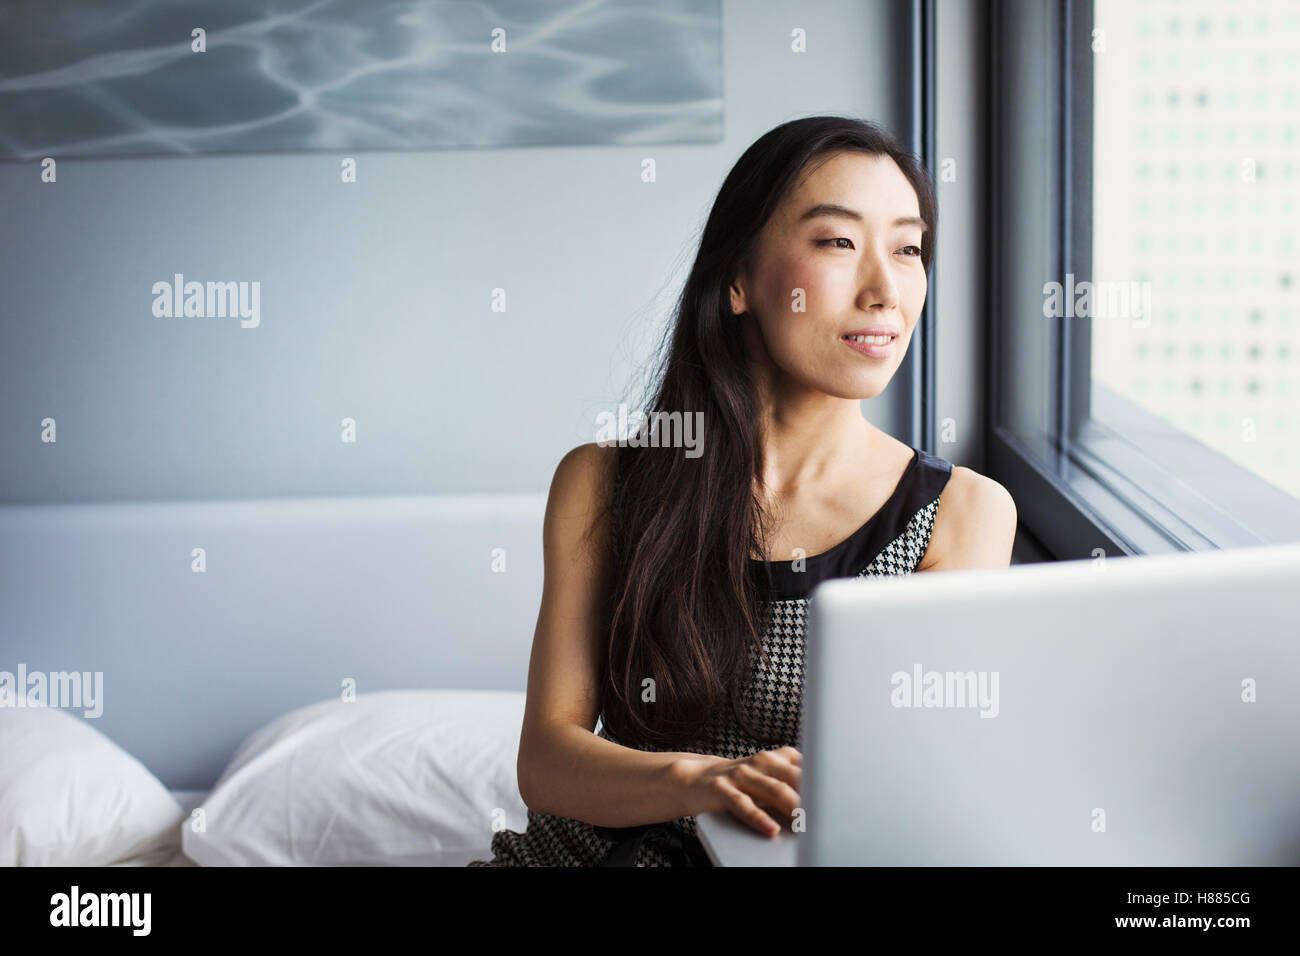 A business woman dressed, sitting on her bed using a laptop. - Stock Image